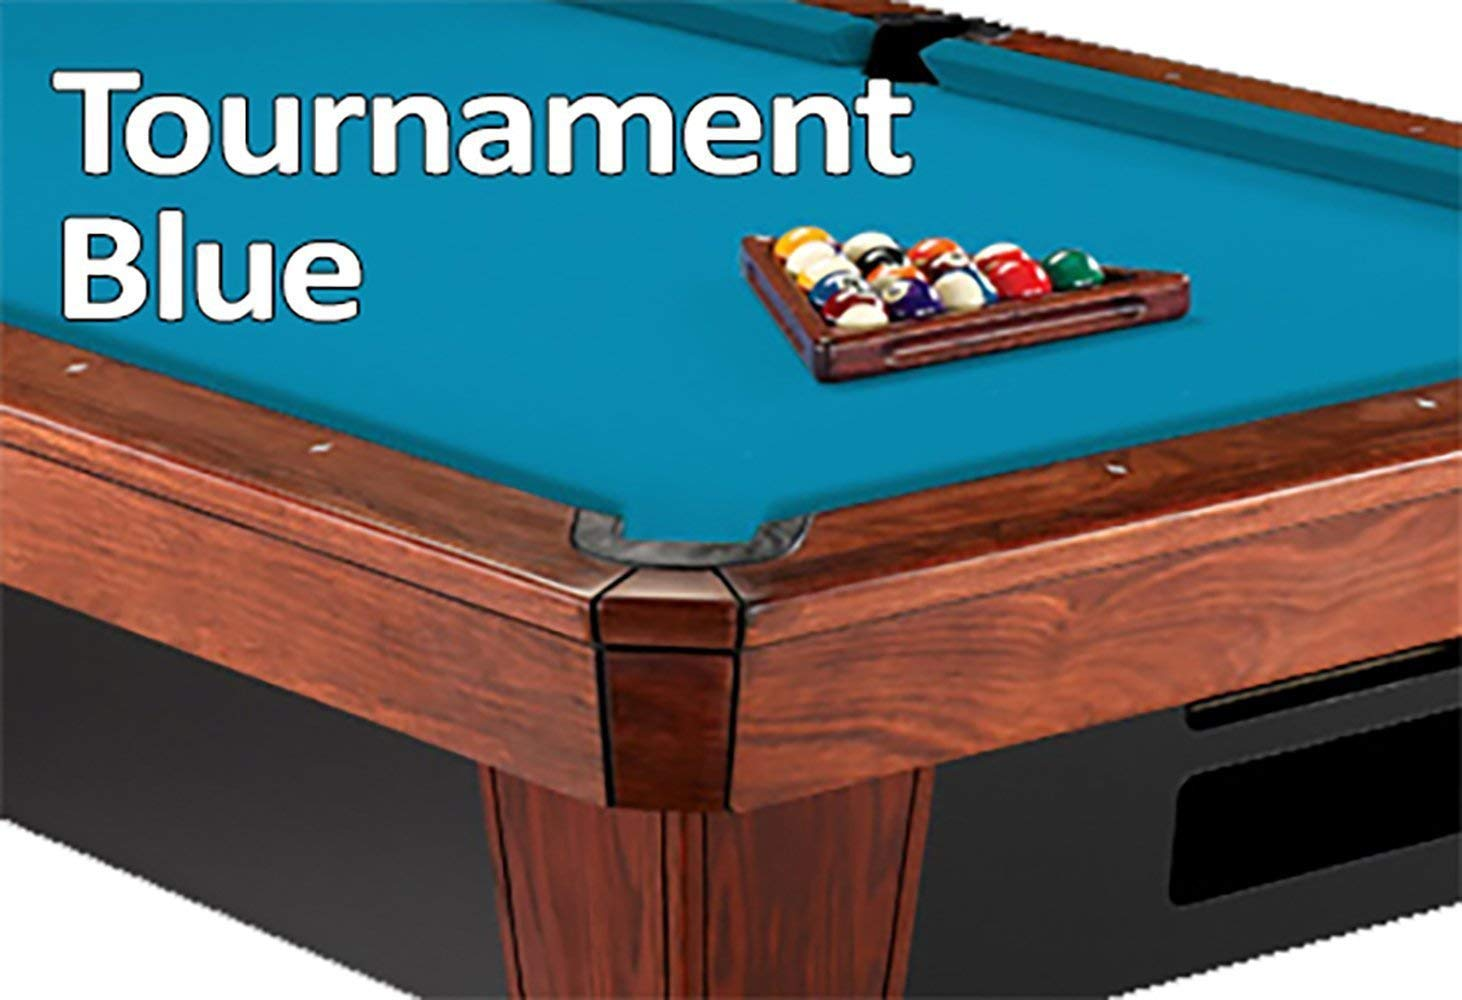 Simonis Cloth 860HR Pool Table Cloth - Tournament ブルー - 9ft B0043QGKU6